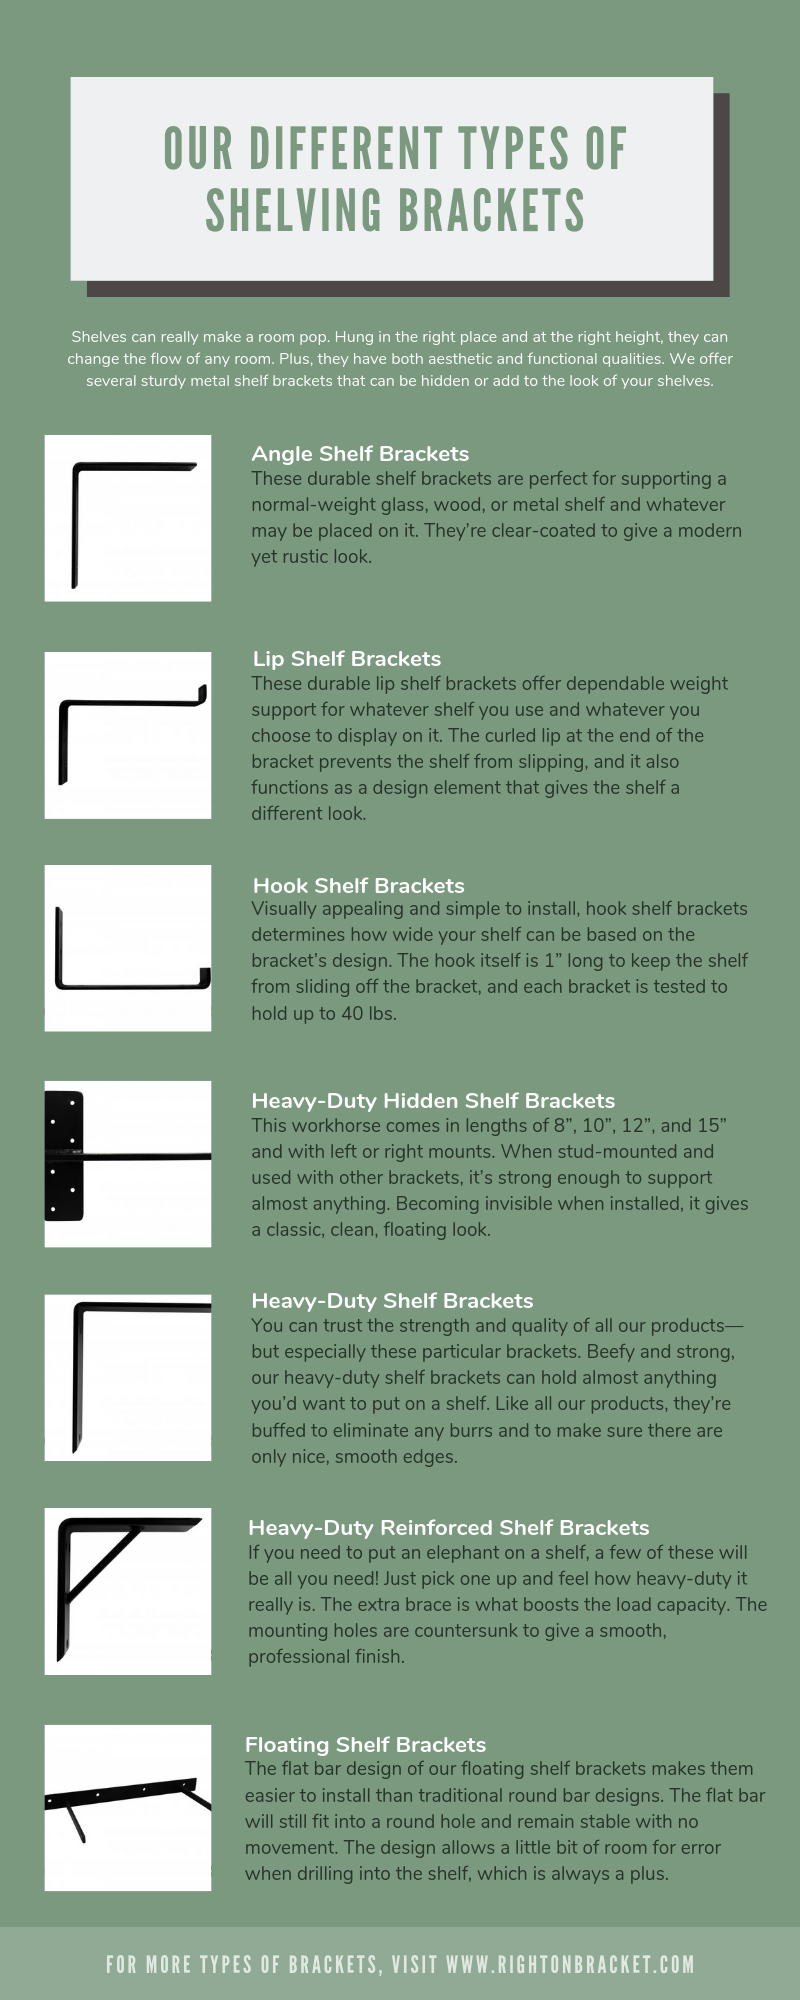 Our Different Types of Wall and Countertop Brackets infographic